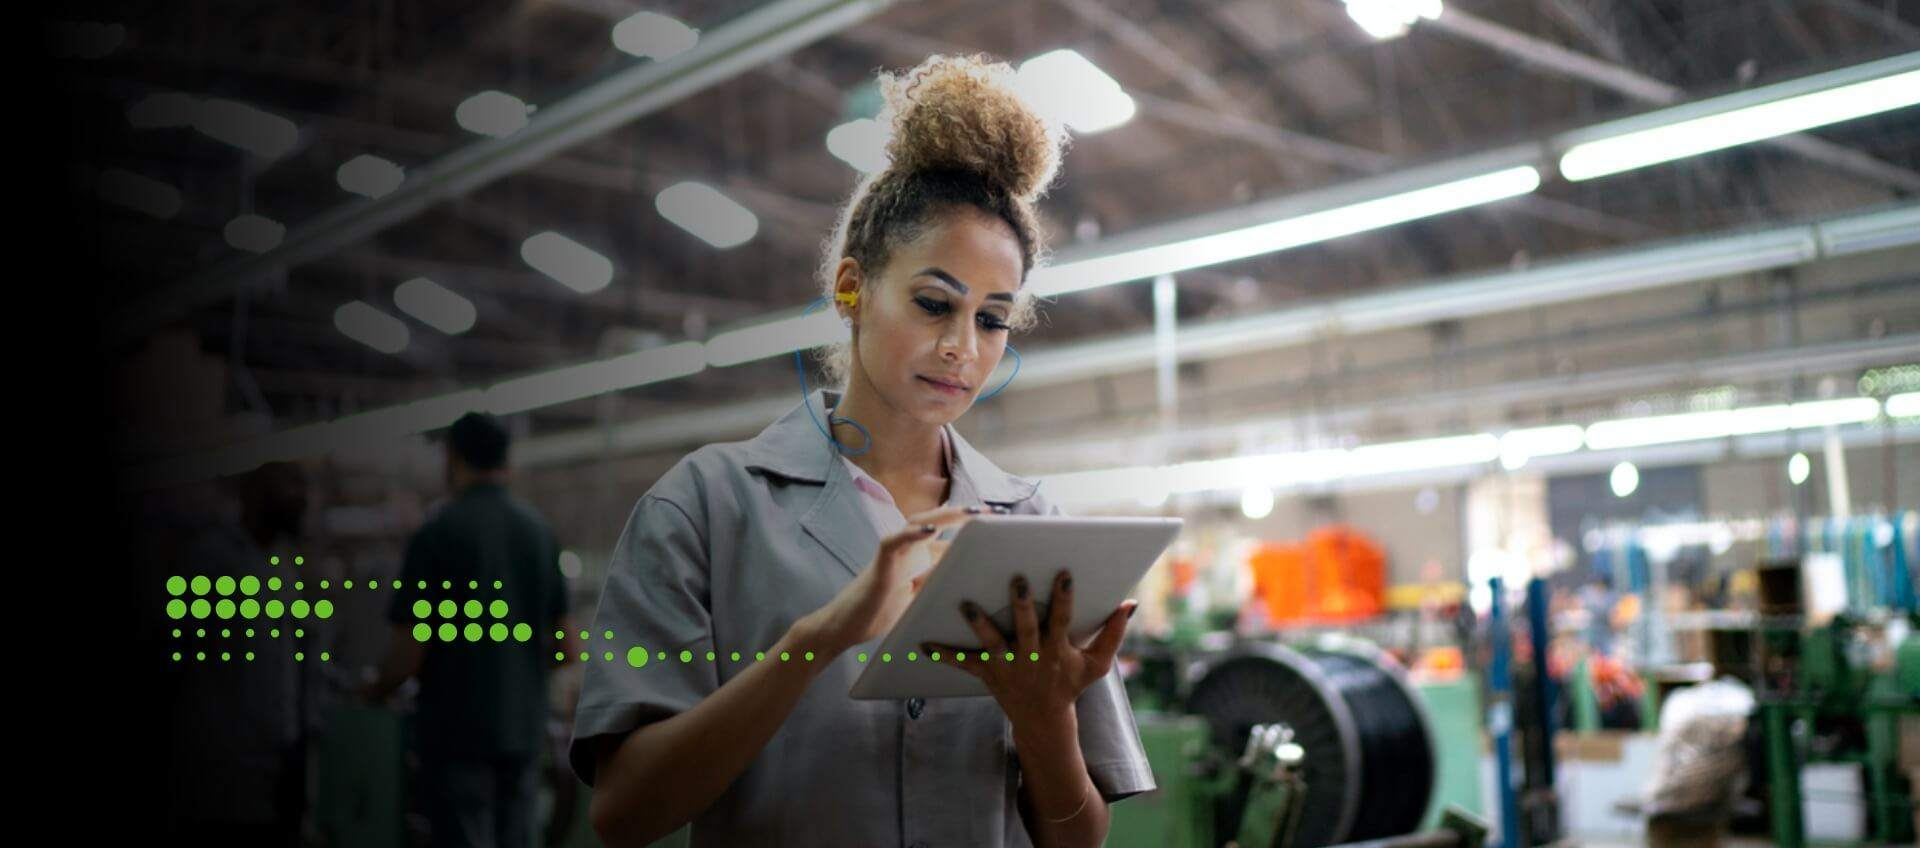 WHAT DIGITAL TRANSFORMATION MEANS FOR THE FUTURE OF SOUTH AFRICAN BUSINESSES